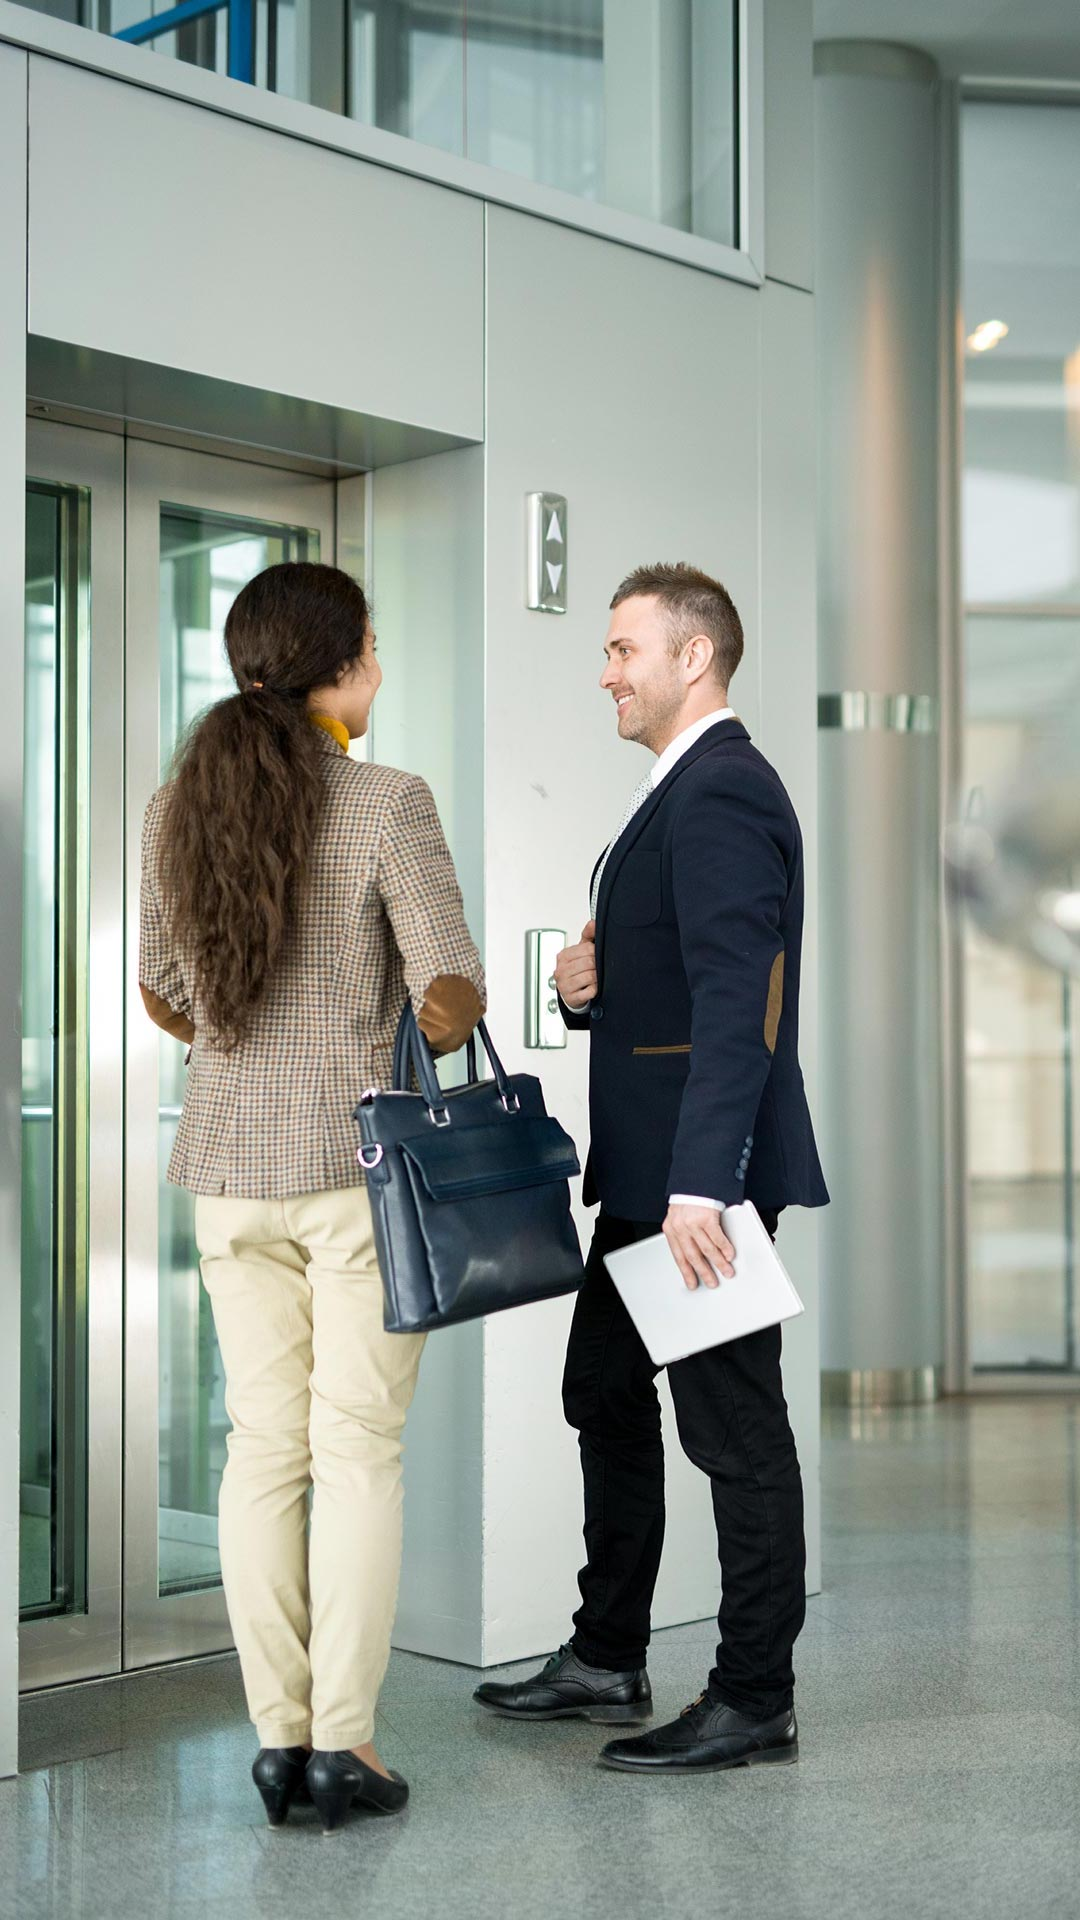 Two people waiting for elevator doors